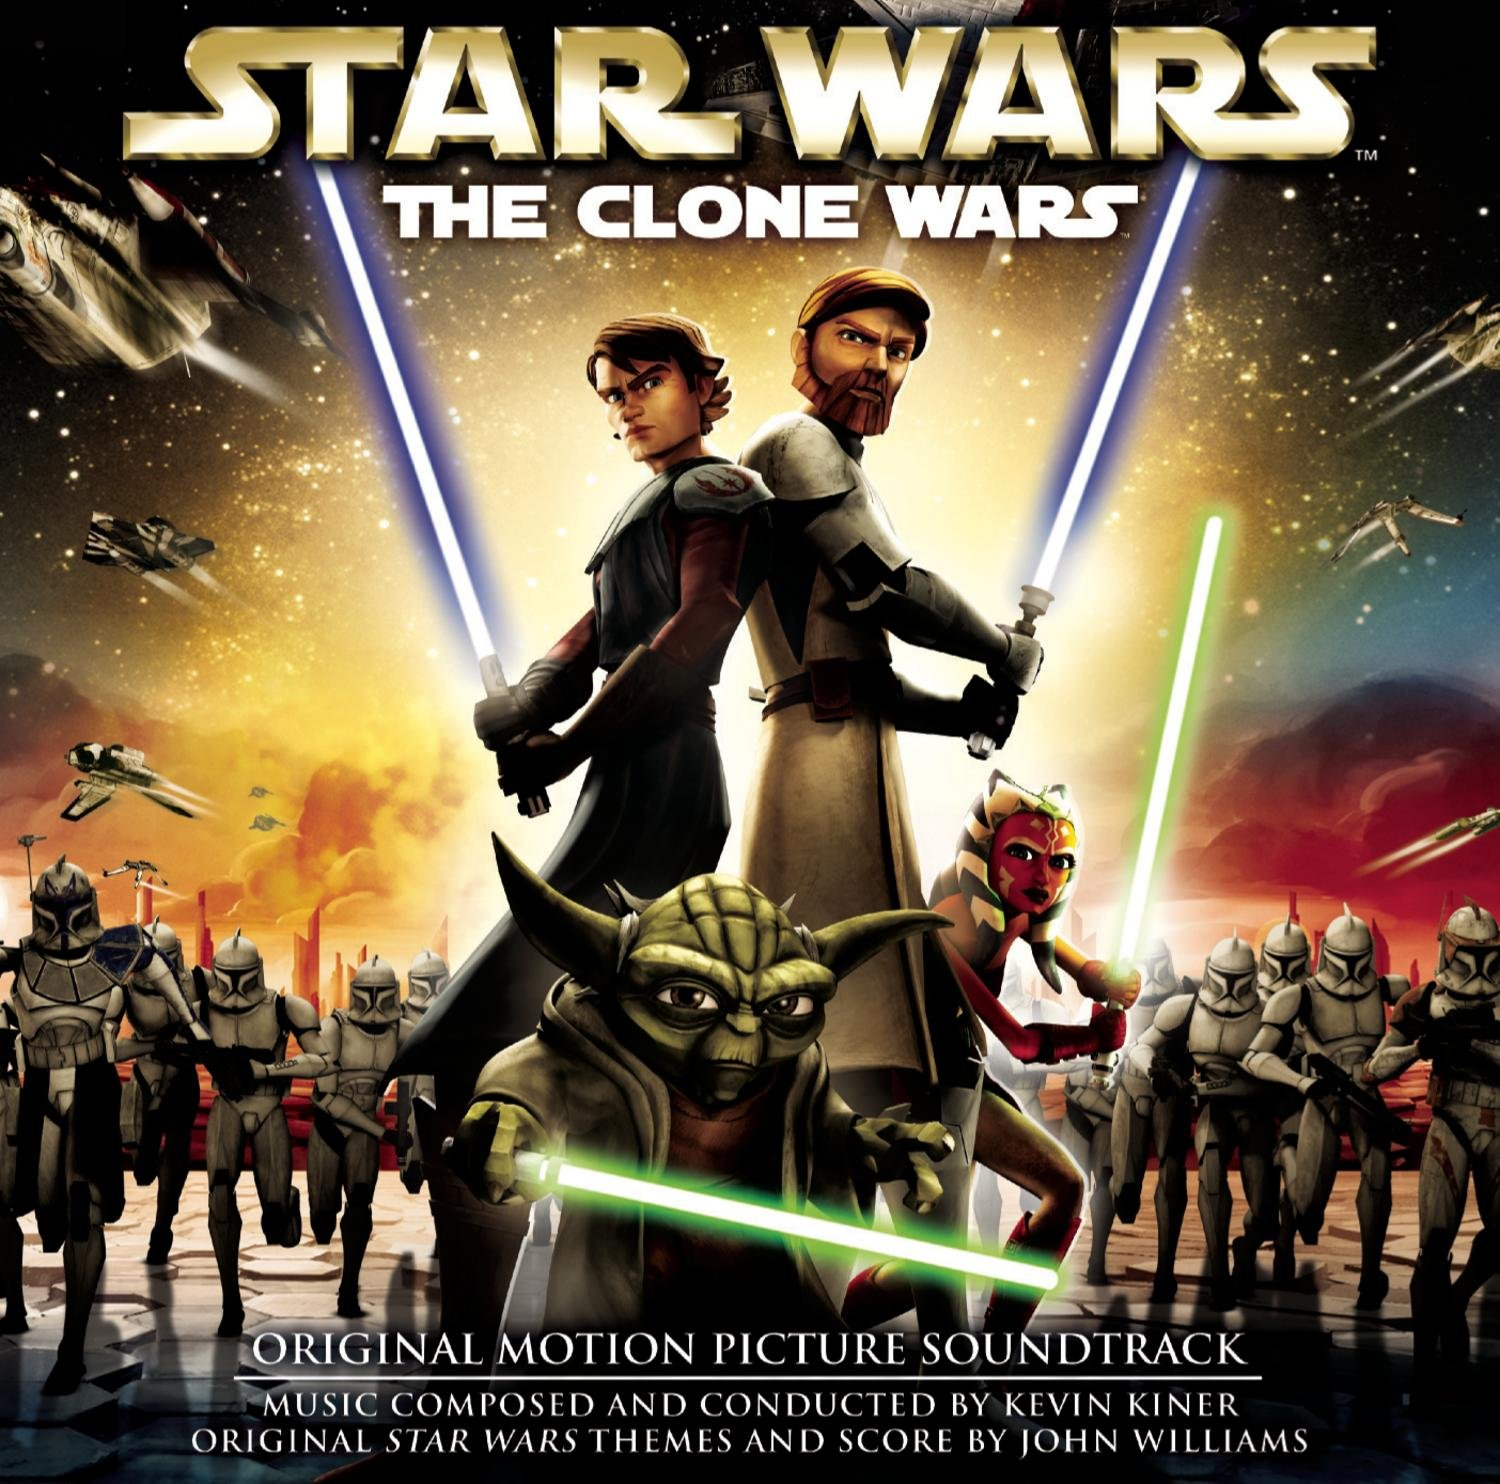 Star Wars: The Clone Wars Original Motion Picture Soundtrack